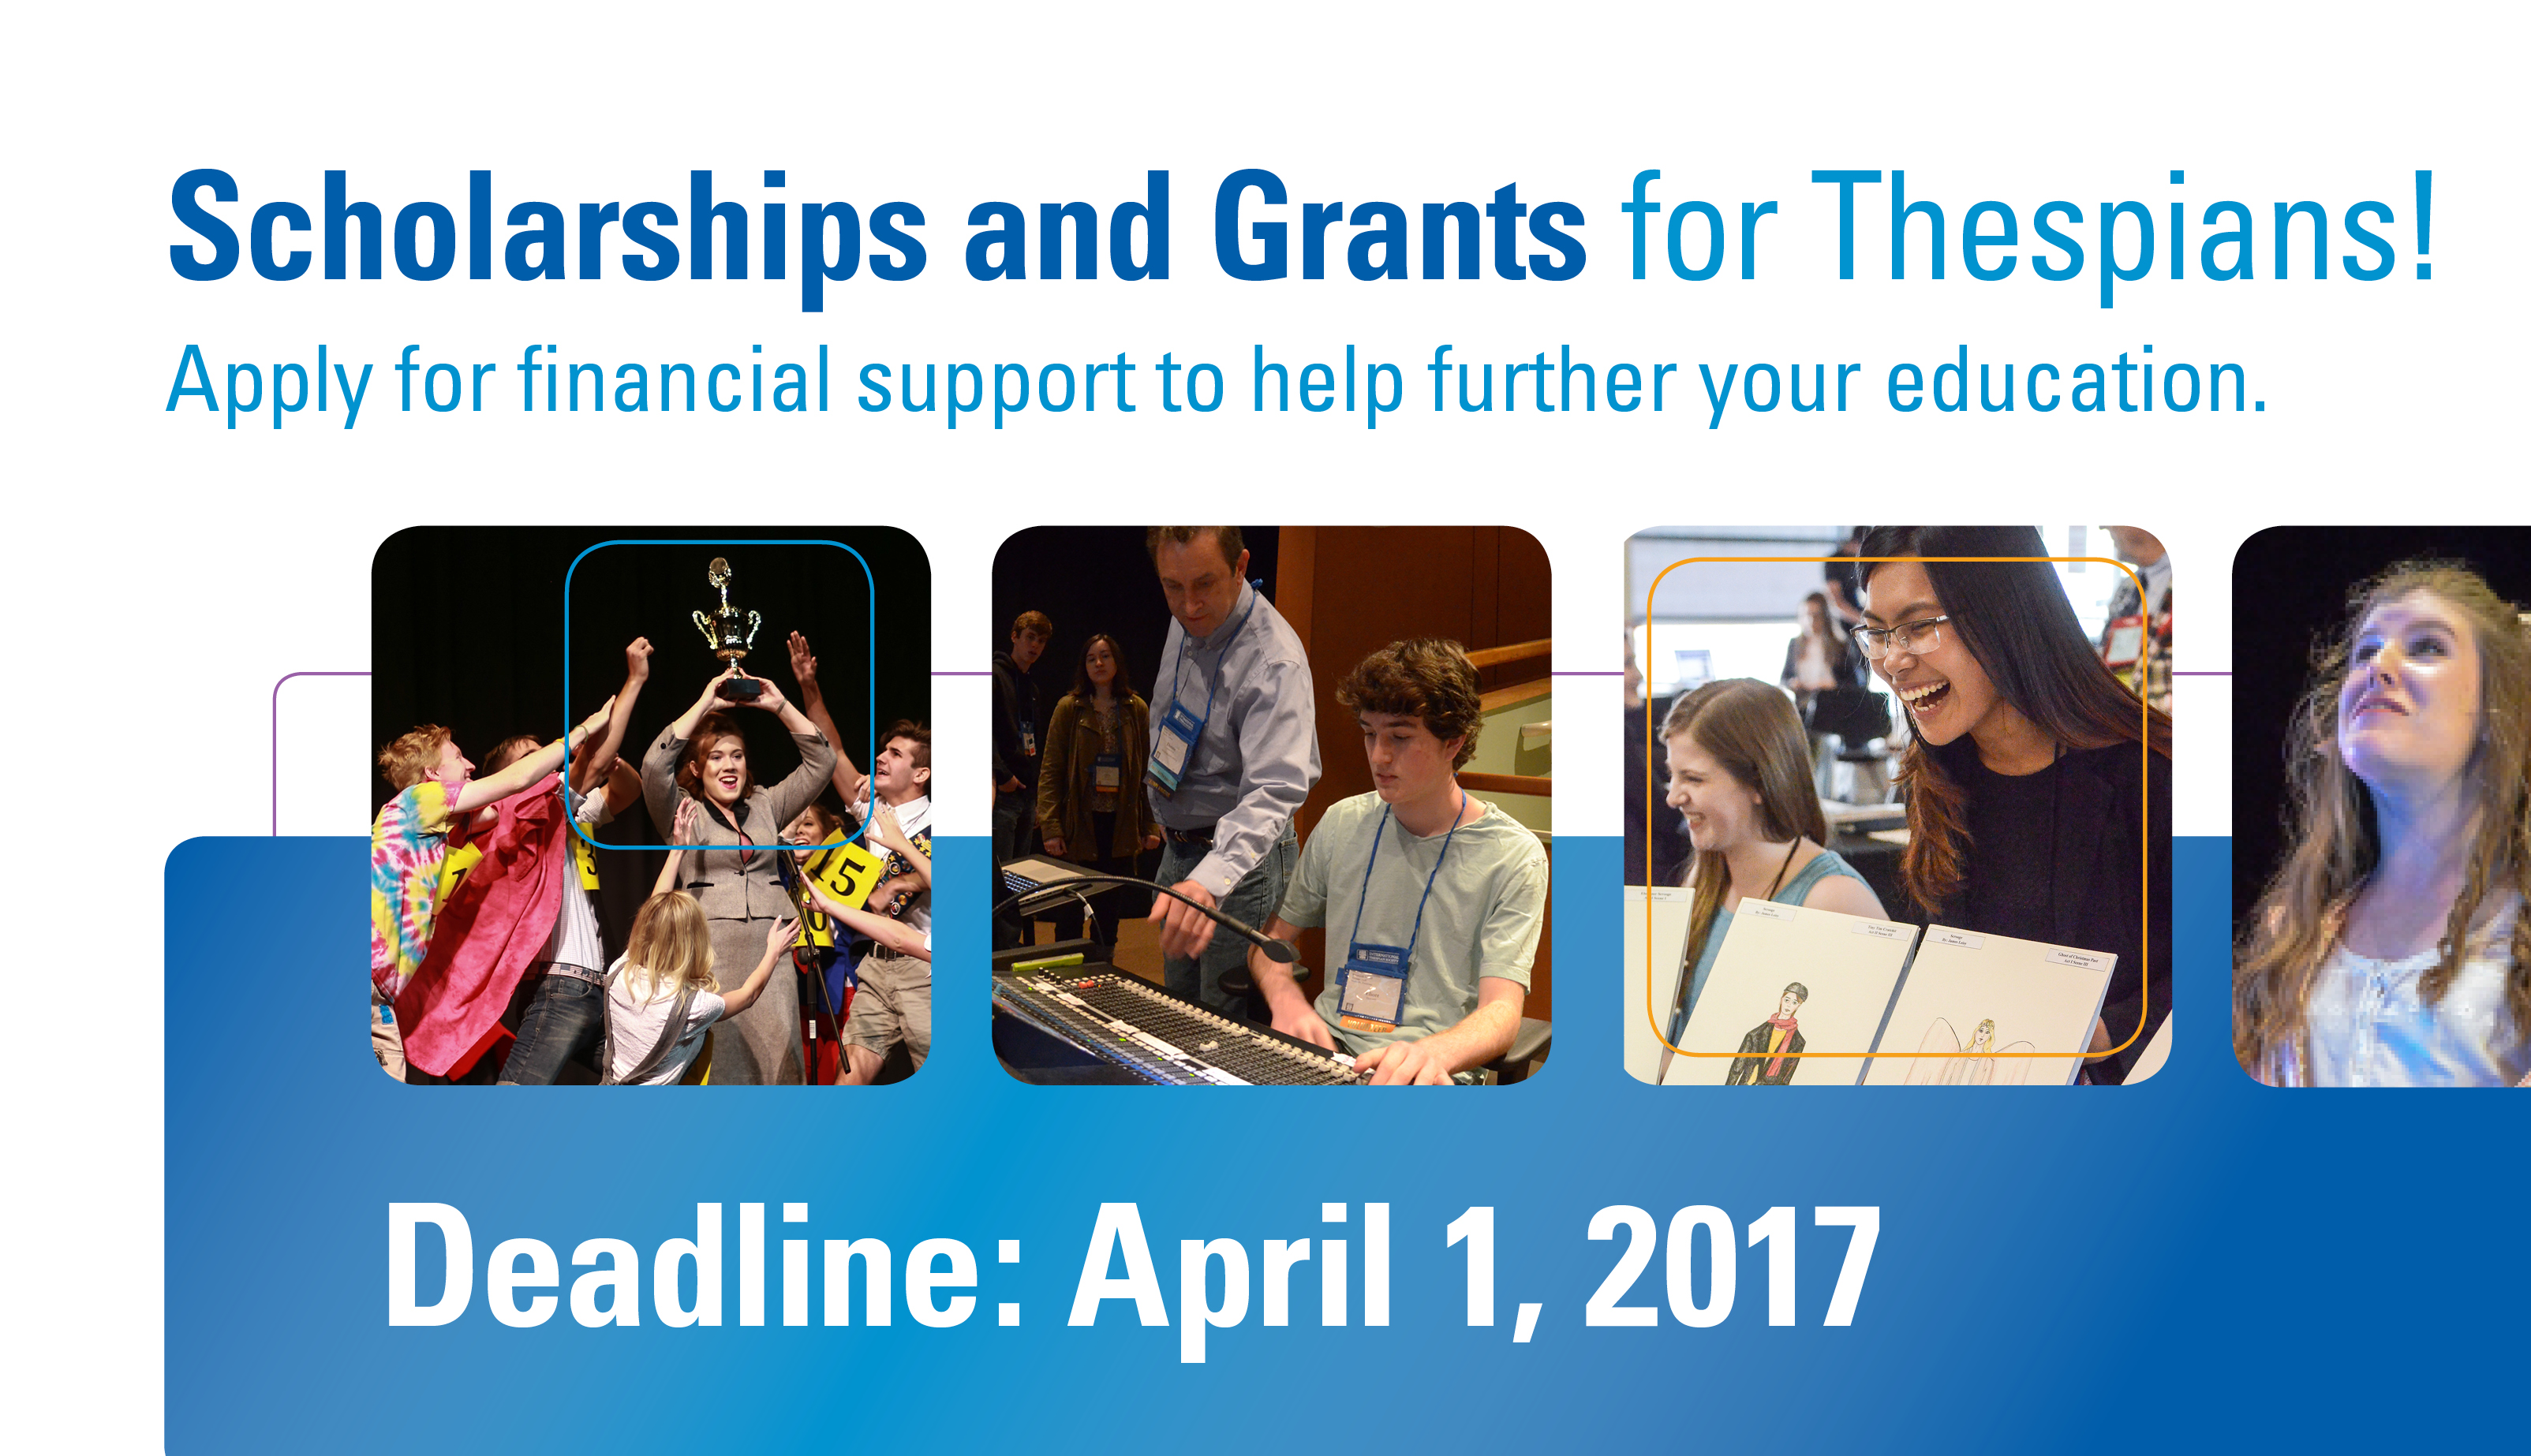 Scholarships and Grants for Thespians! Apply for financial support to help further your education. Deadline: April 1, 2017. https://www.schooltheatre.org/programs/ags/scholarships